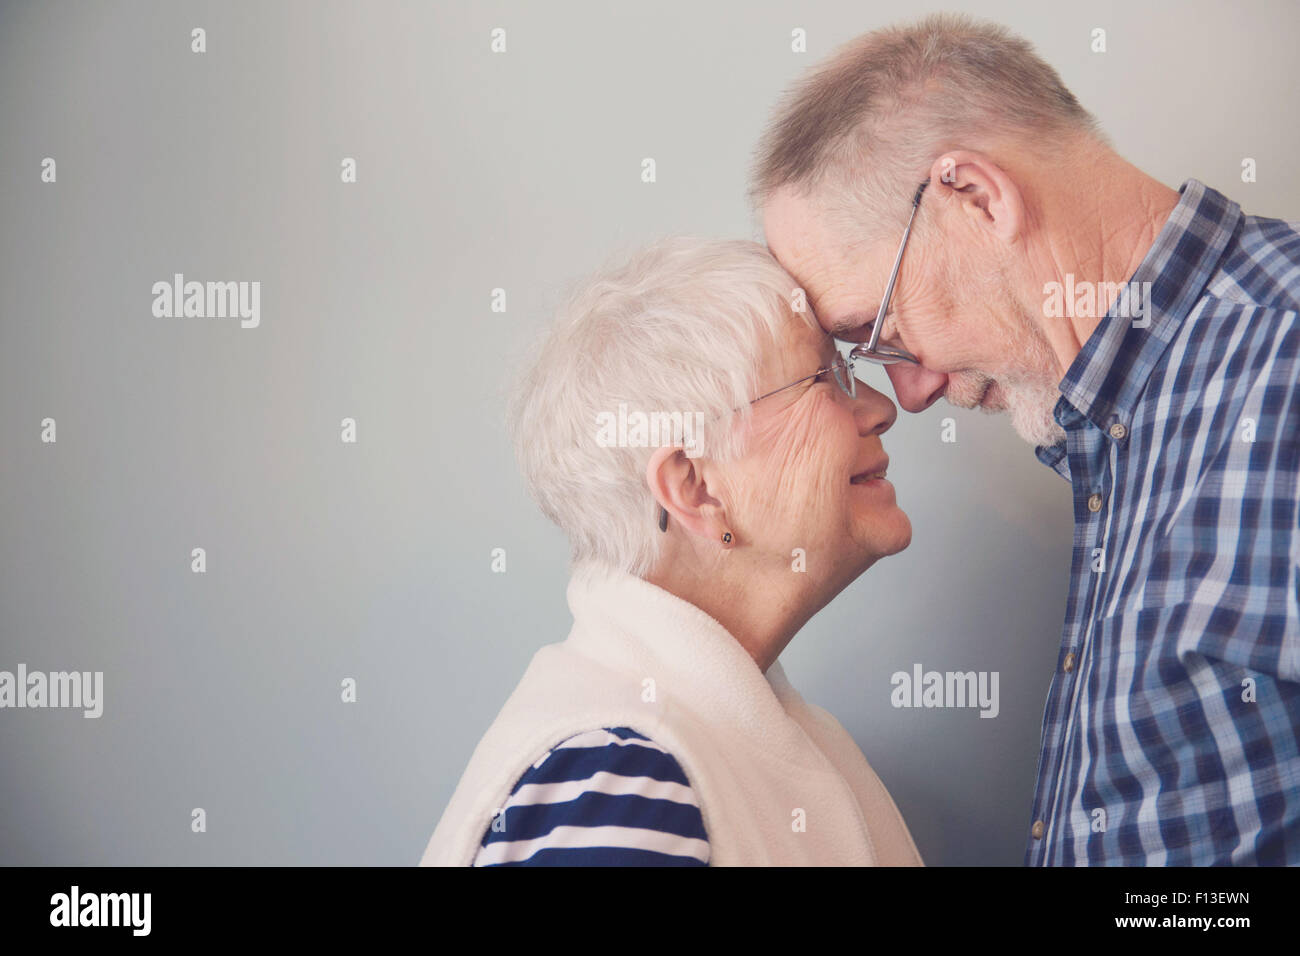 Senior couple touching foreheads and smiling - Stock Image